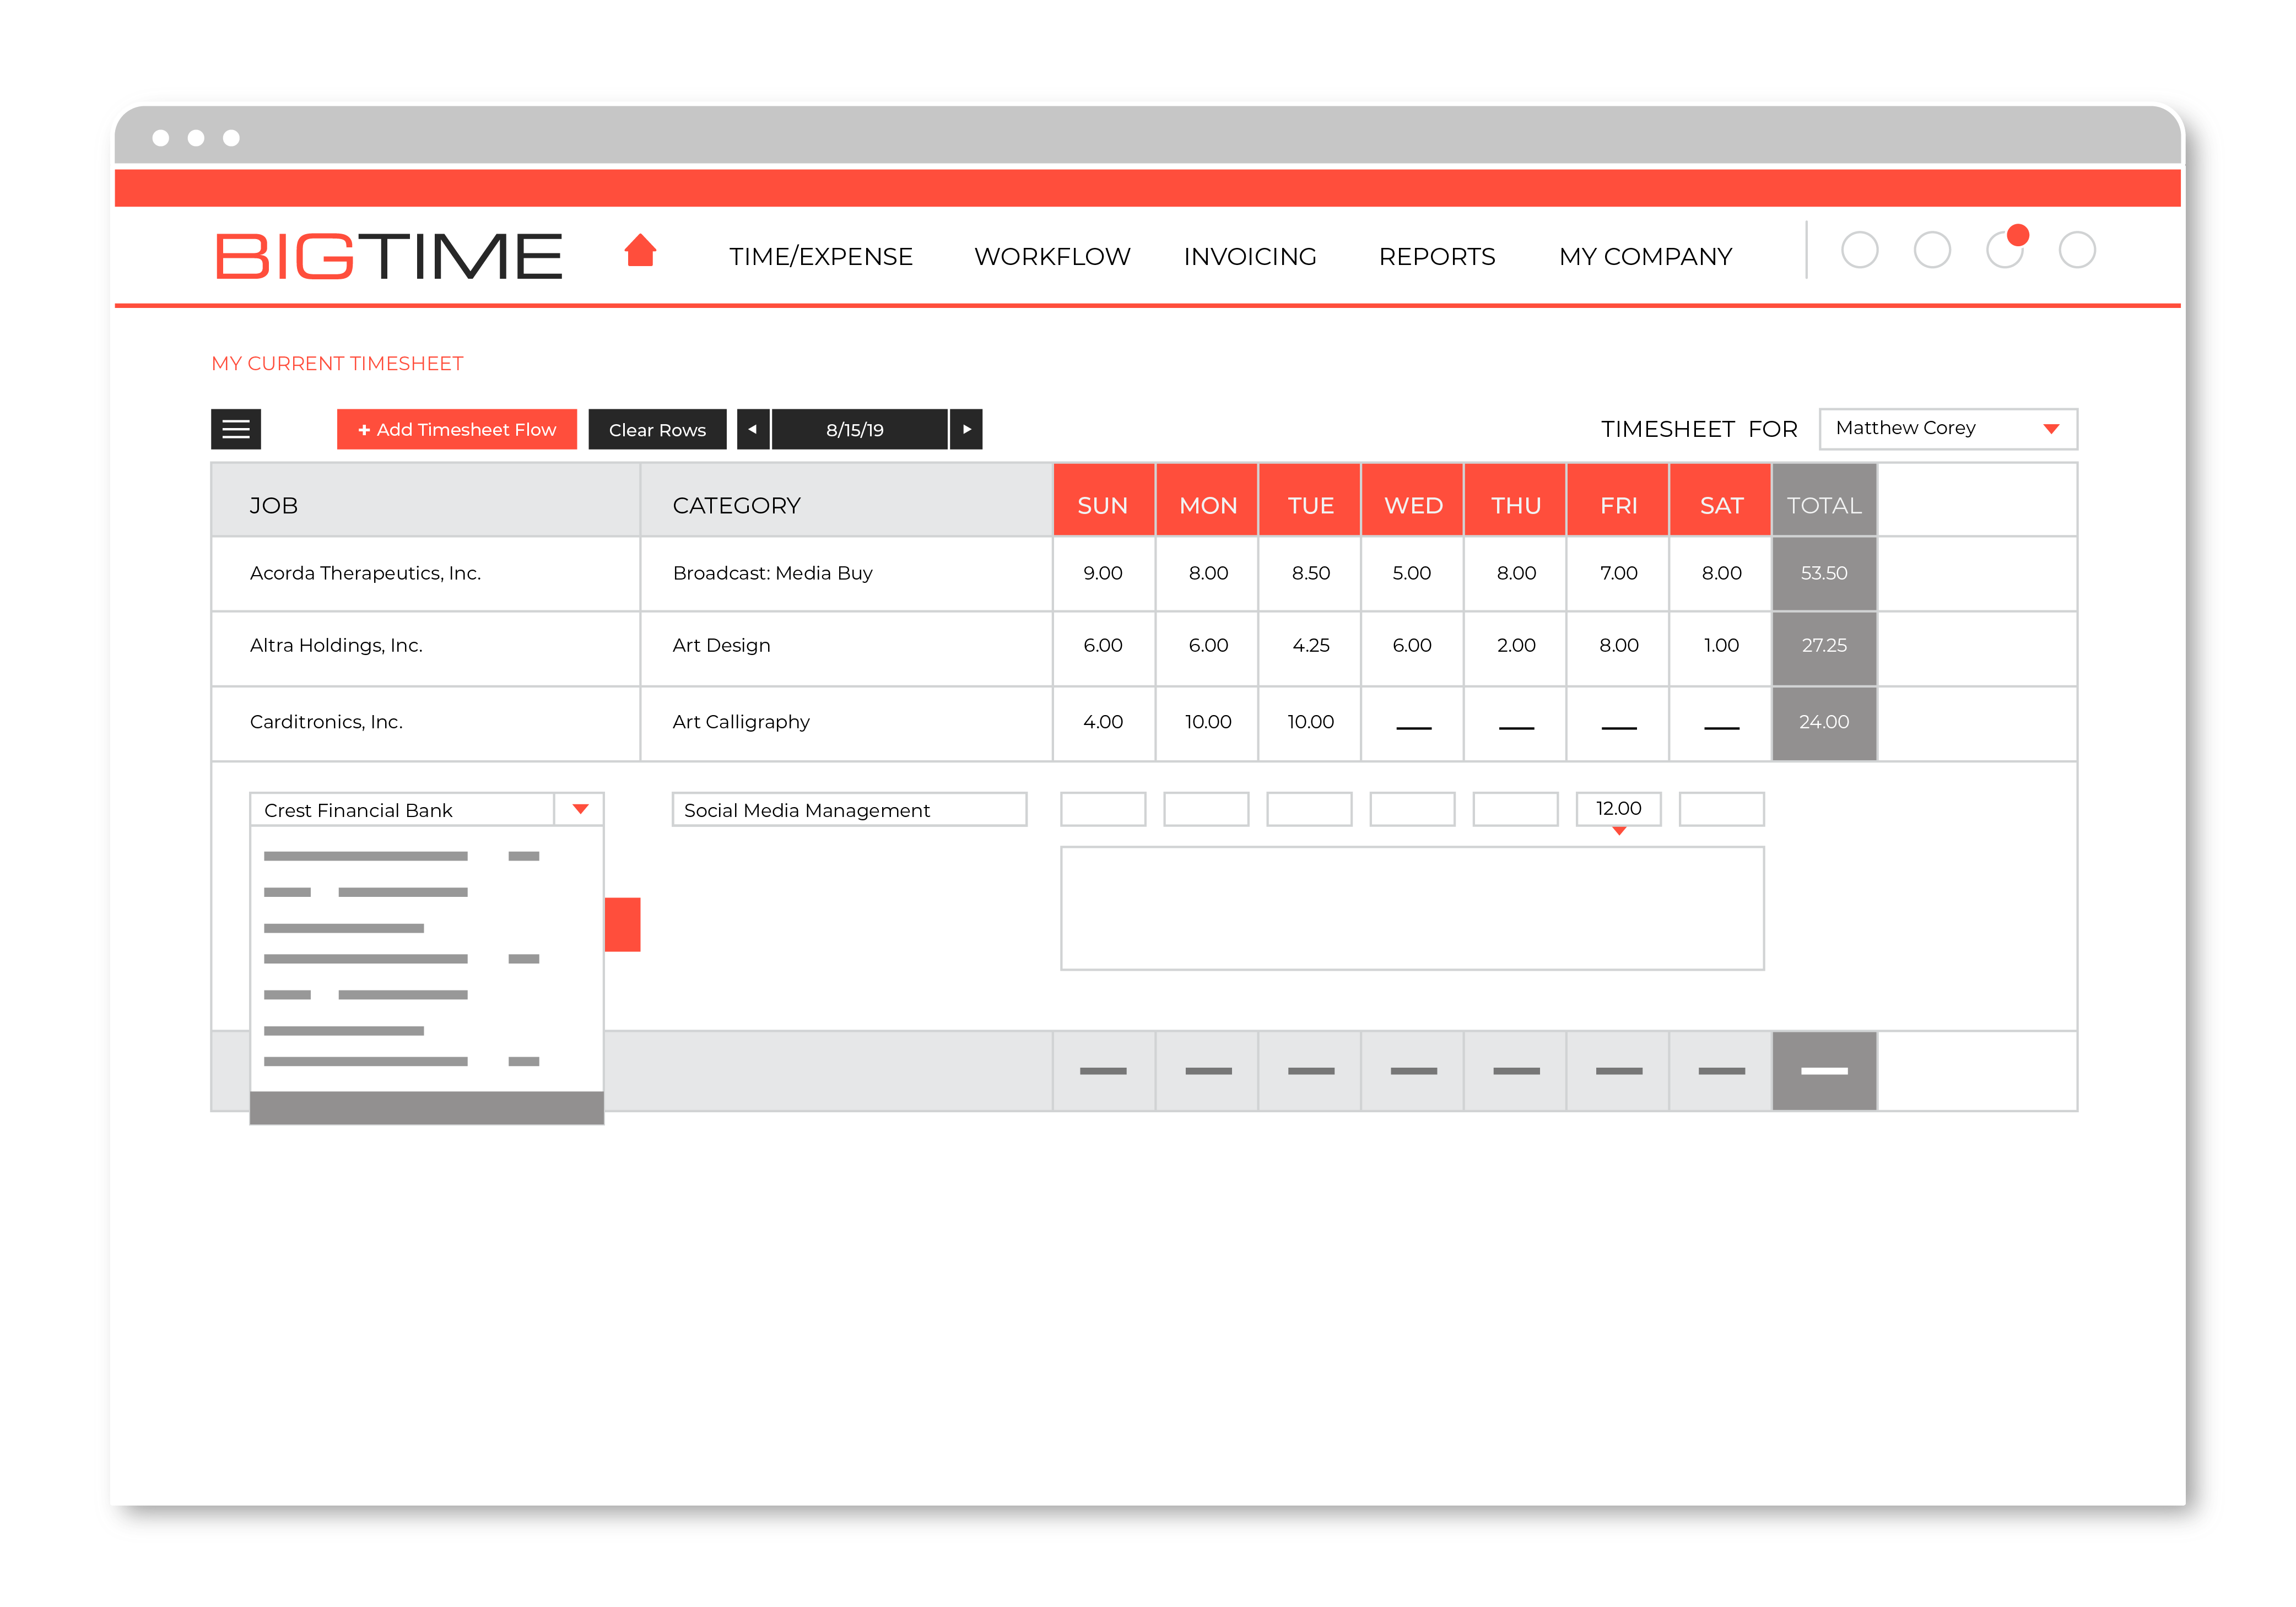 Our customizable views, smart lookups, user-driven presets/defaults and more support the most intuitive timesheet on the market.